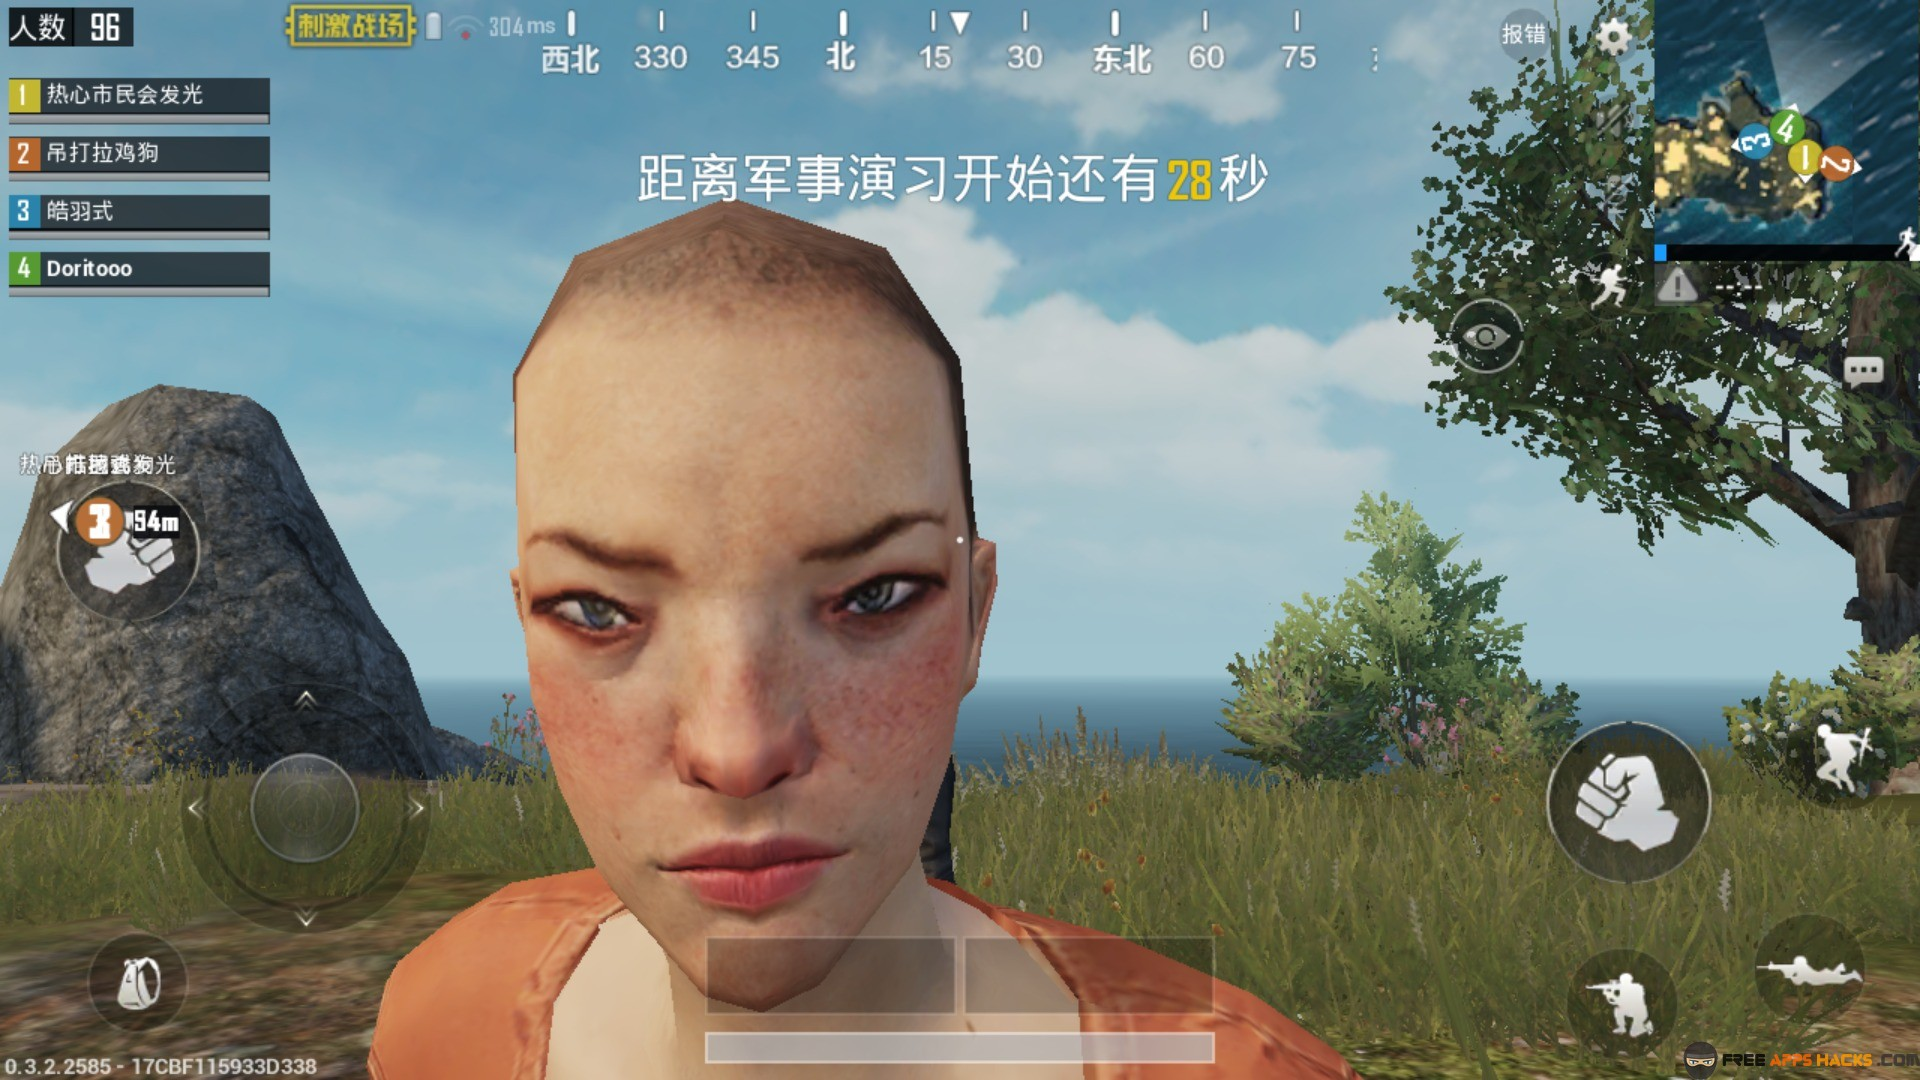 Pubg Mobile Android Mod Apk High Graphics Download: Pubg Mobile Modded APK Free Android App